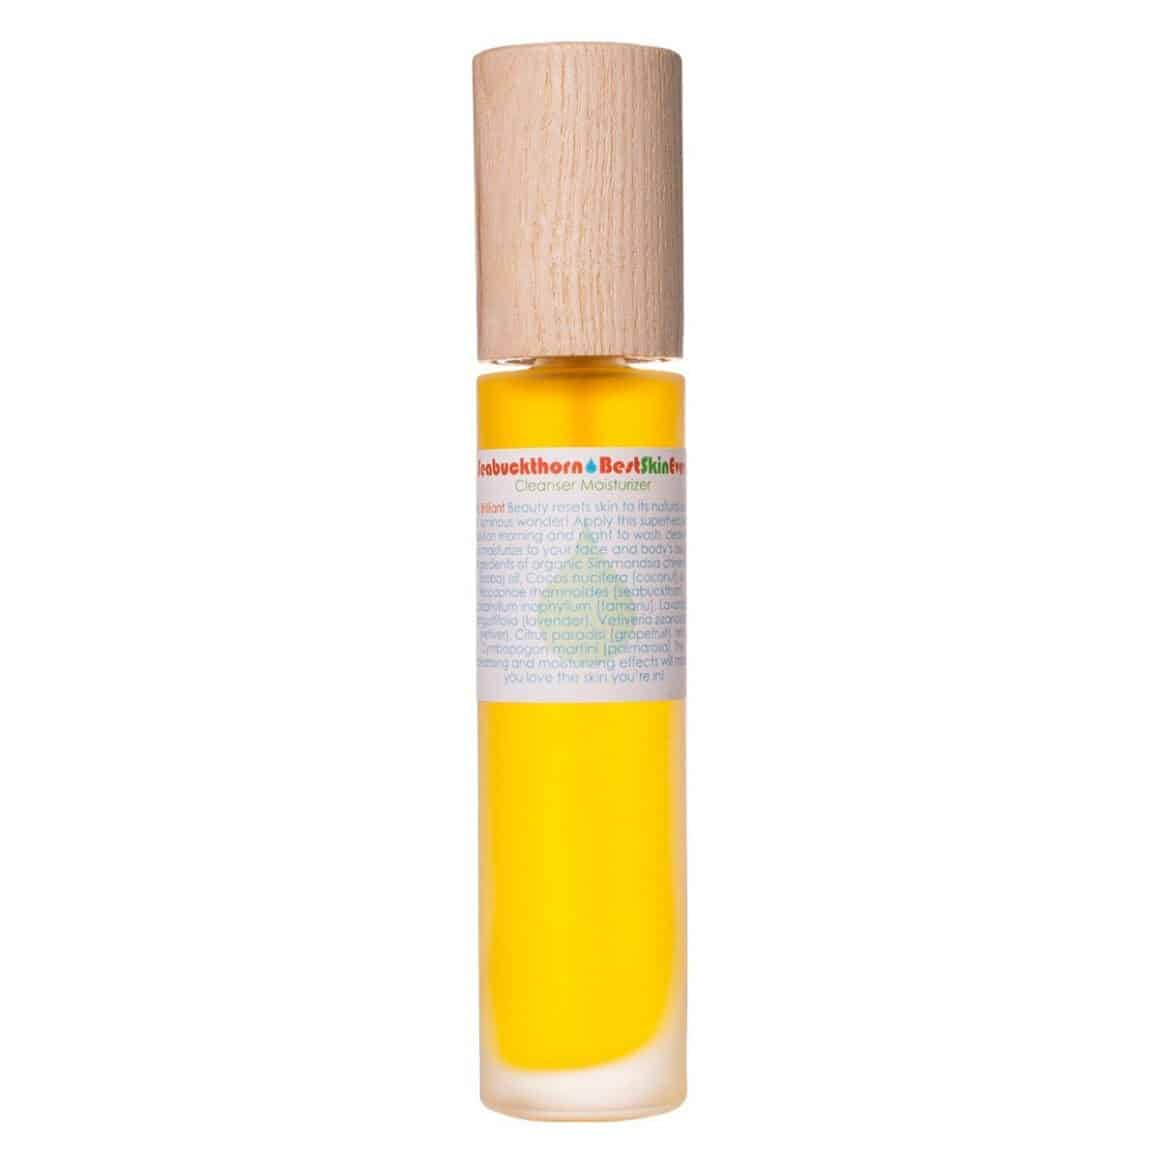 Living Libations Seabuckthorn Best Skin Ever an all in one face moisturizer, oil cleanser and body oil.